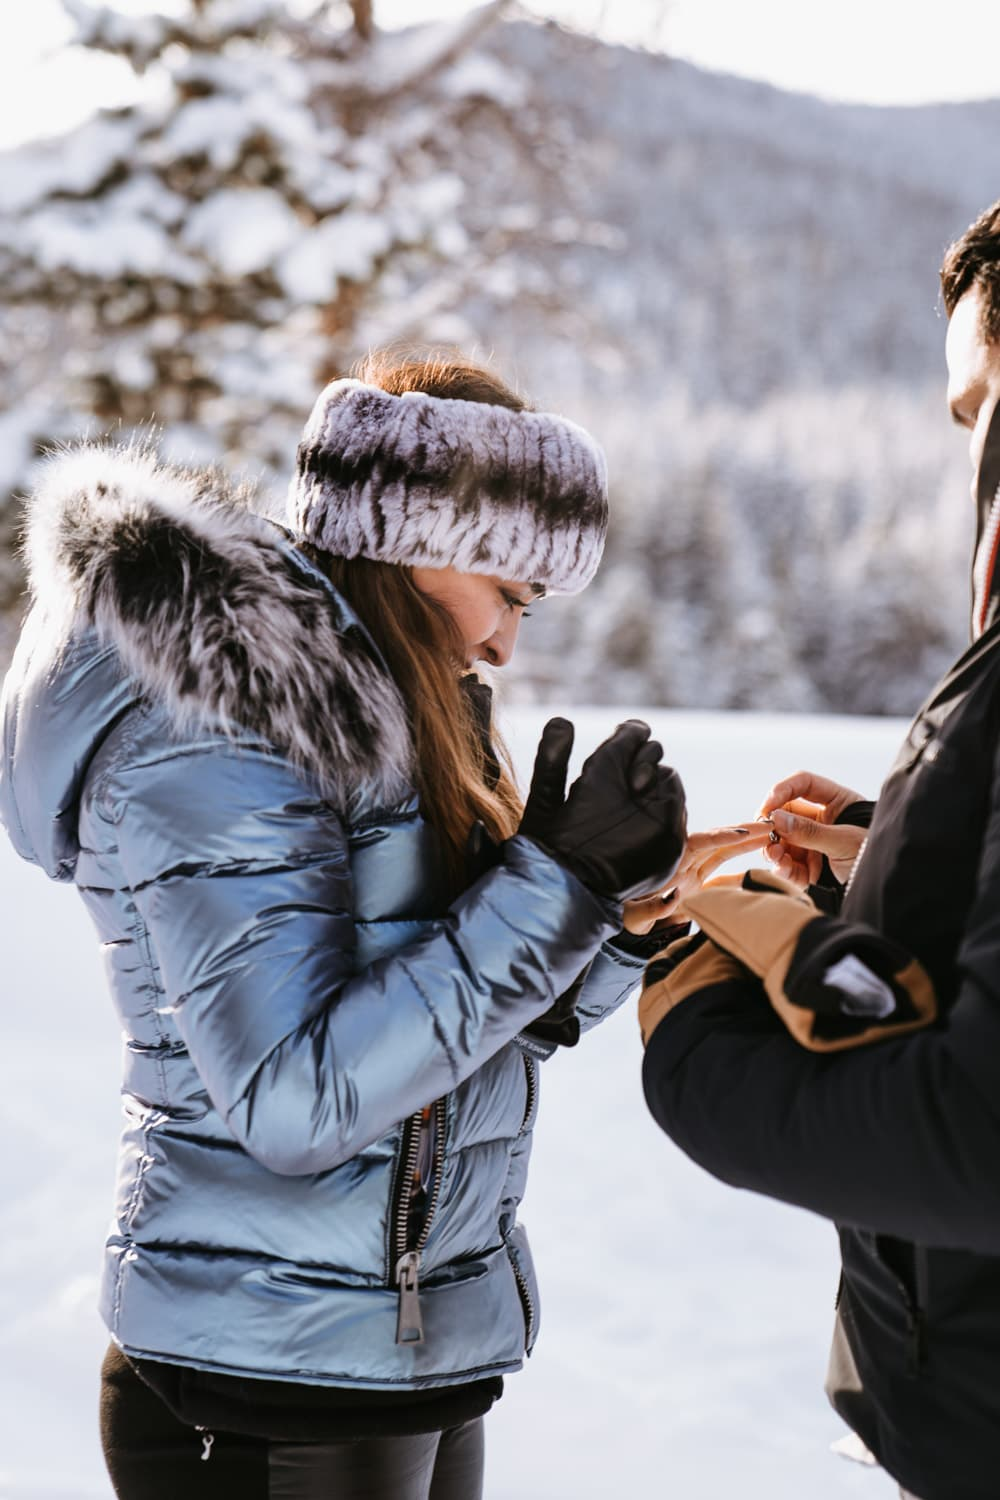 Julio puts the engagement ring on Fernanda's finger for this sleigh ride proposal in Breckenridge